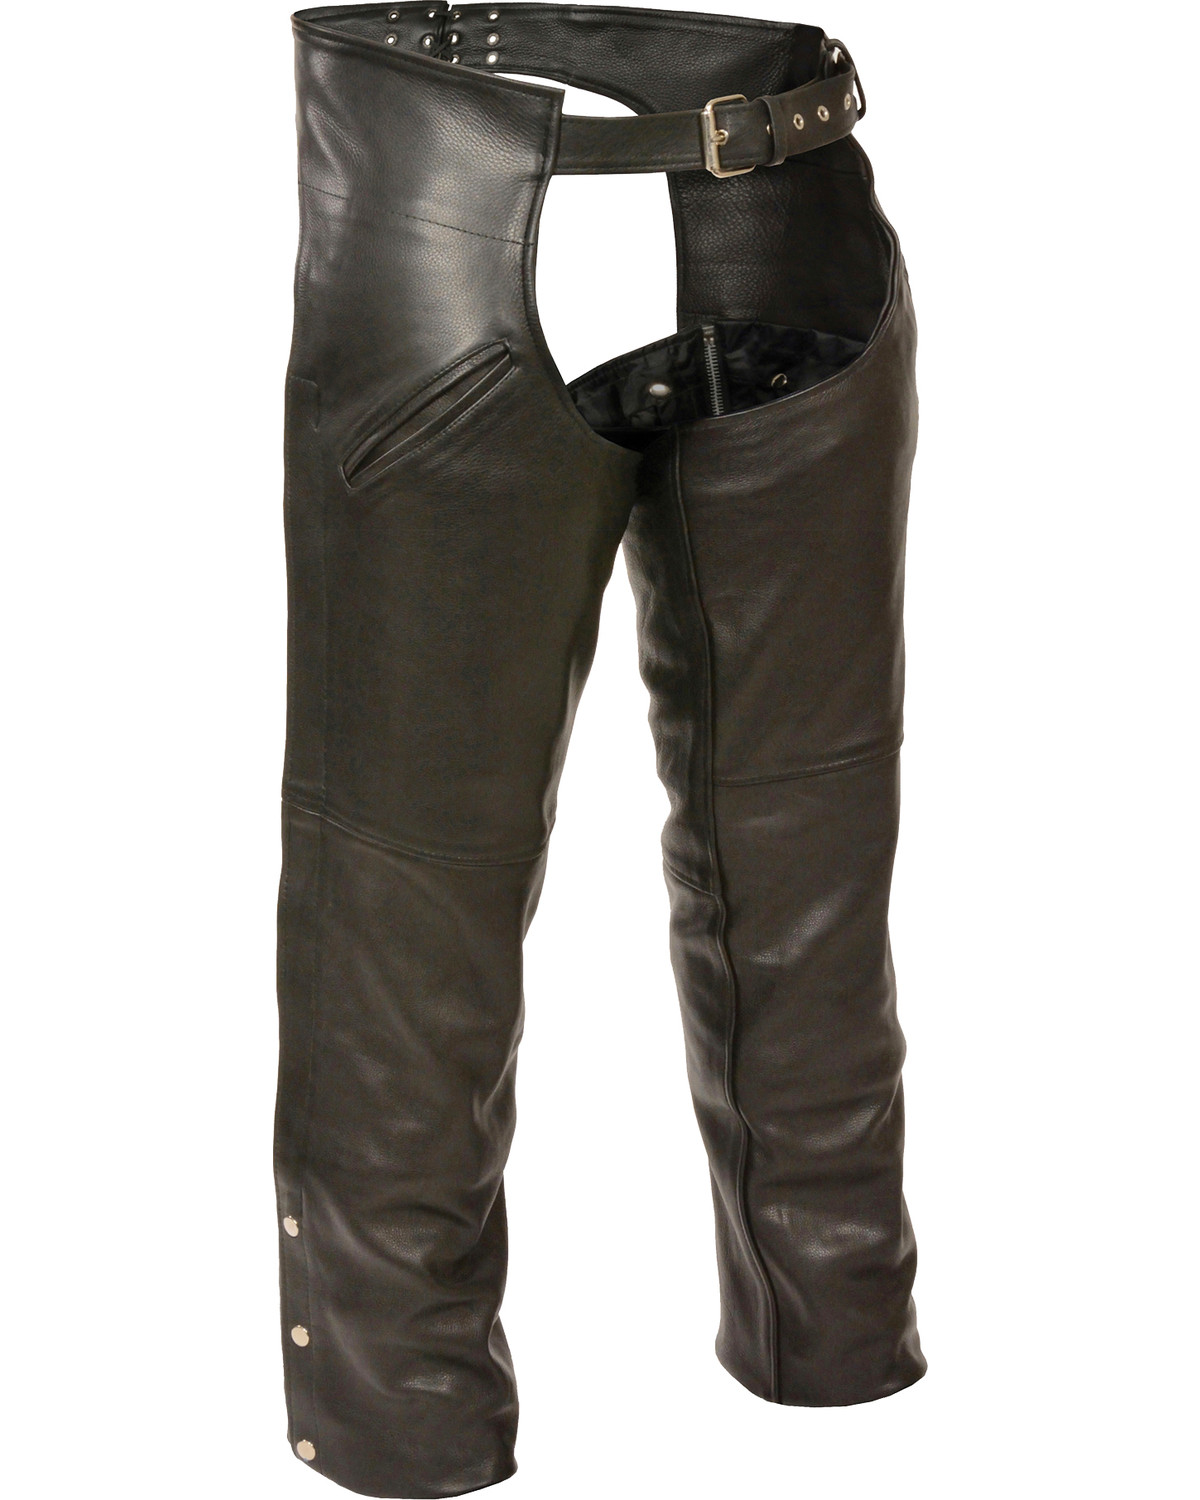 Milwaukee Leather Men's Slash Pocket Thermal Liner Chaps - 3X